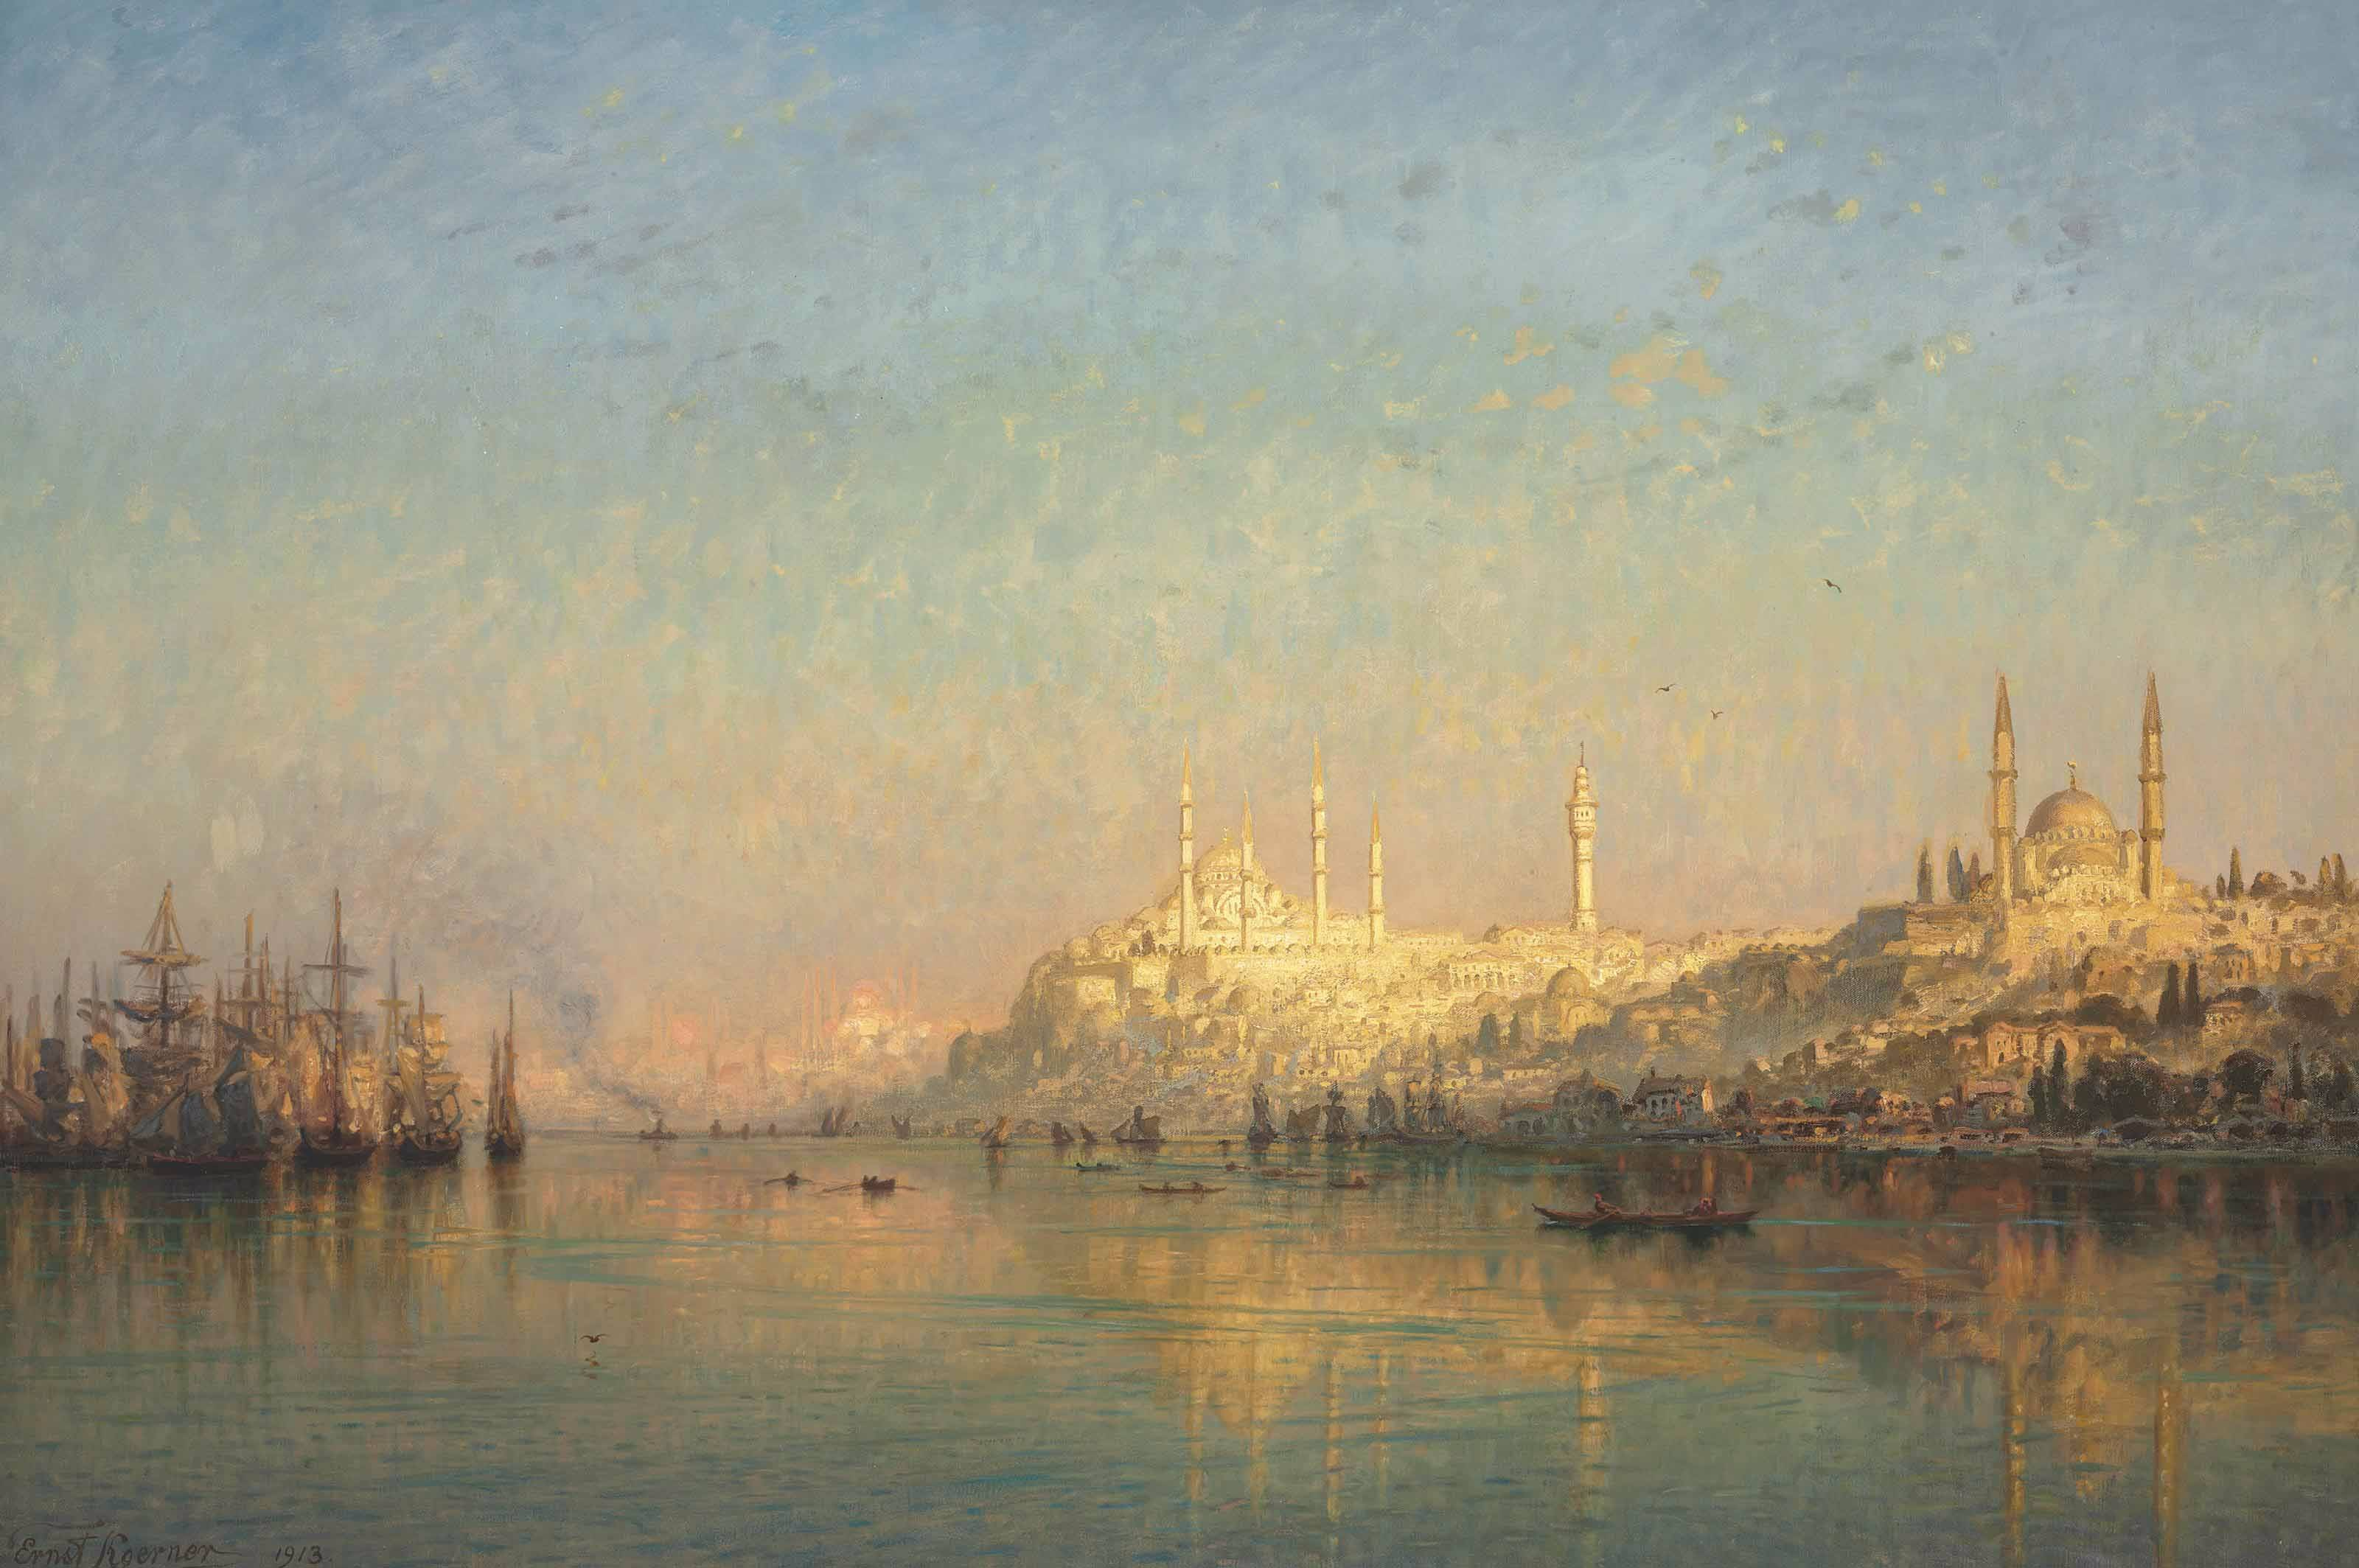 Sophia Horn Measurements: File:View Across The Golden Horn, Hagia Sophia And The